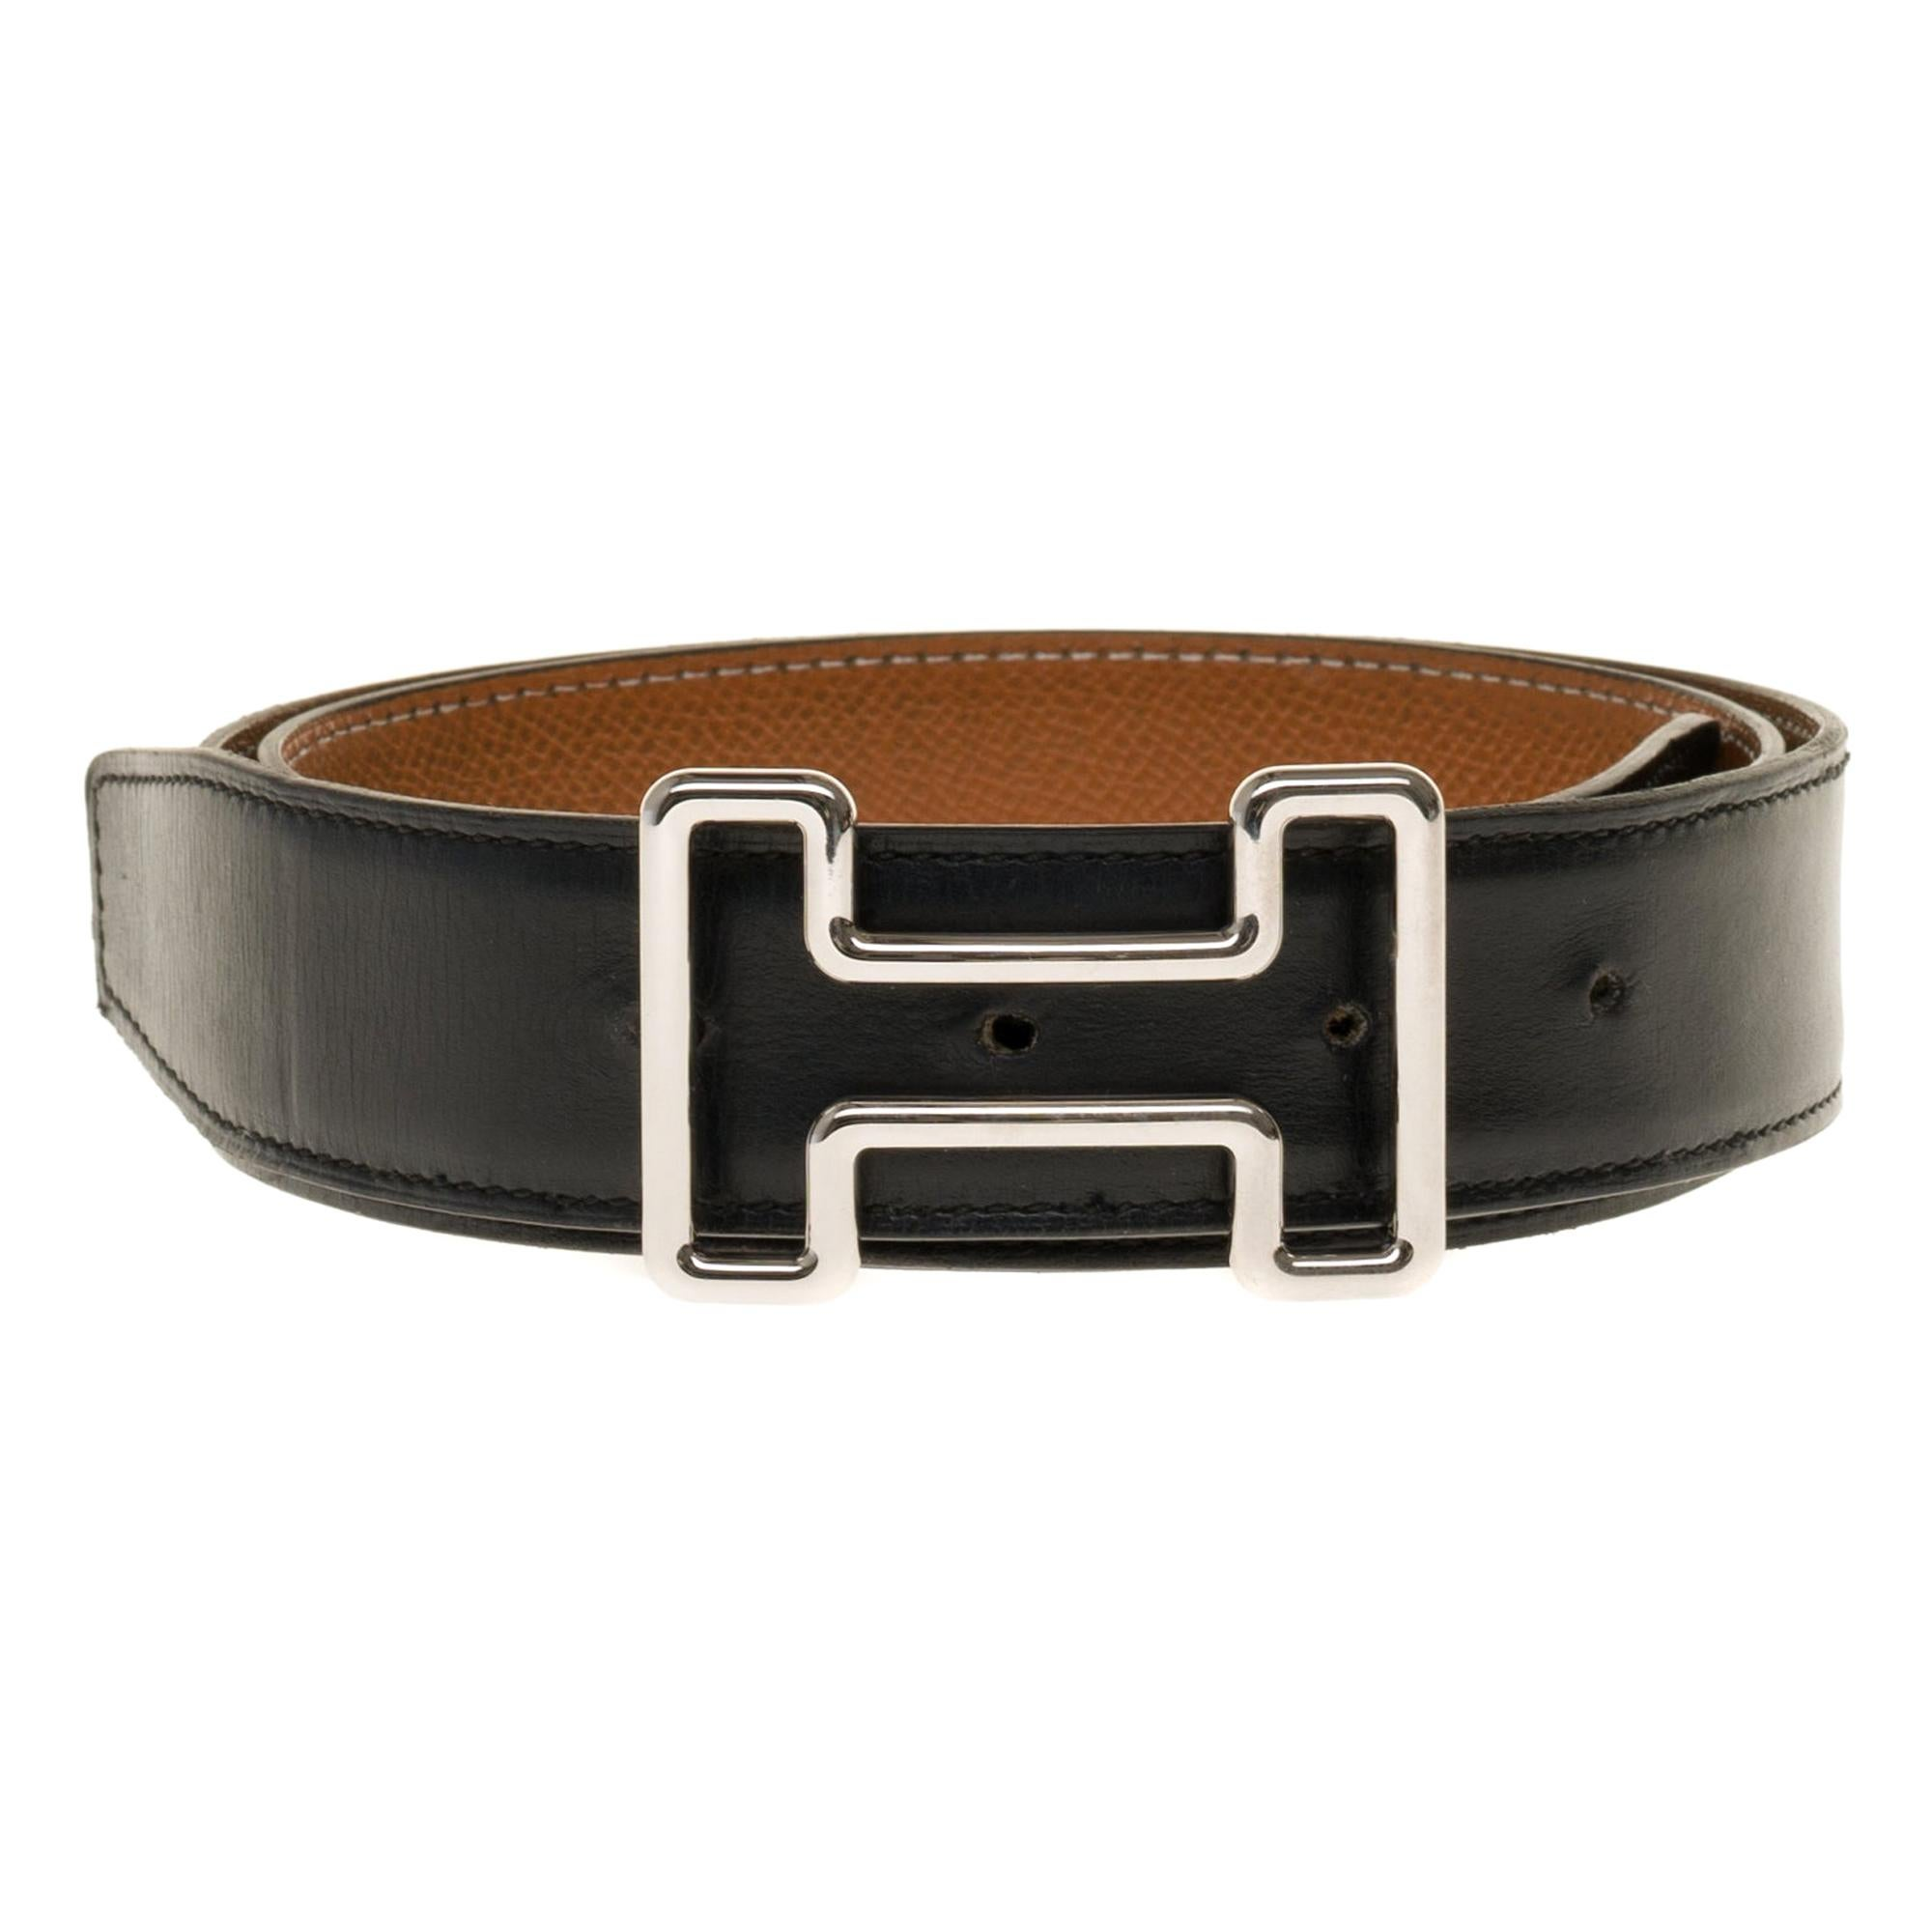 Hermès belt 37mm reverse in black and gold courchevel , Tonight buckle in silver